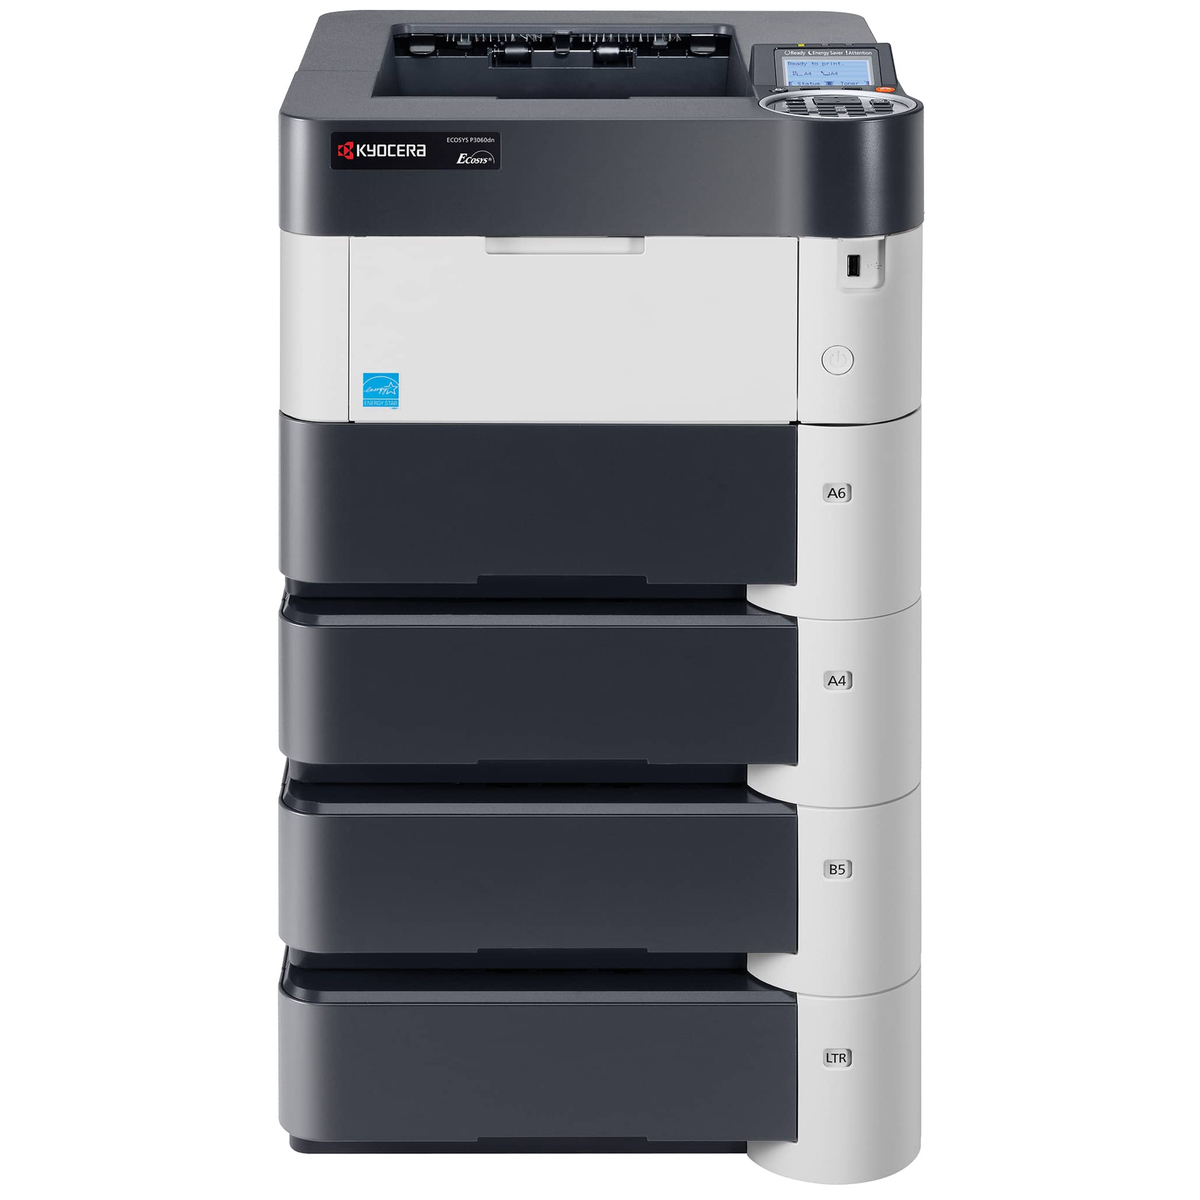 Kyocera Printers:  The Kyocera ECOSYS P3060dn Printer